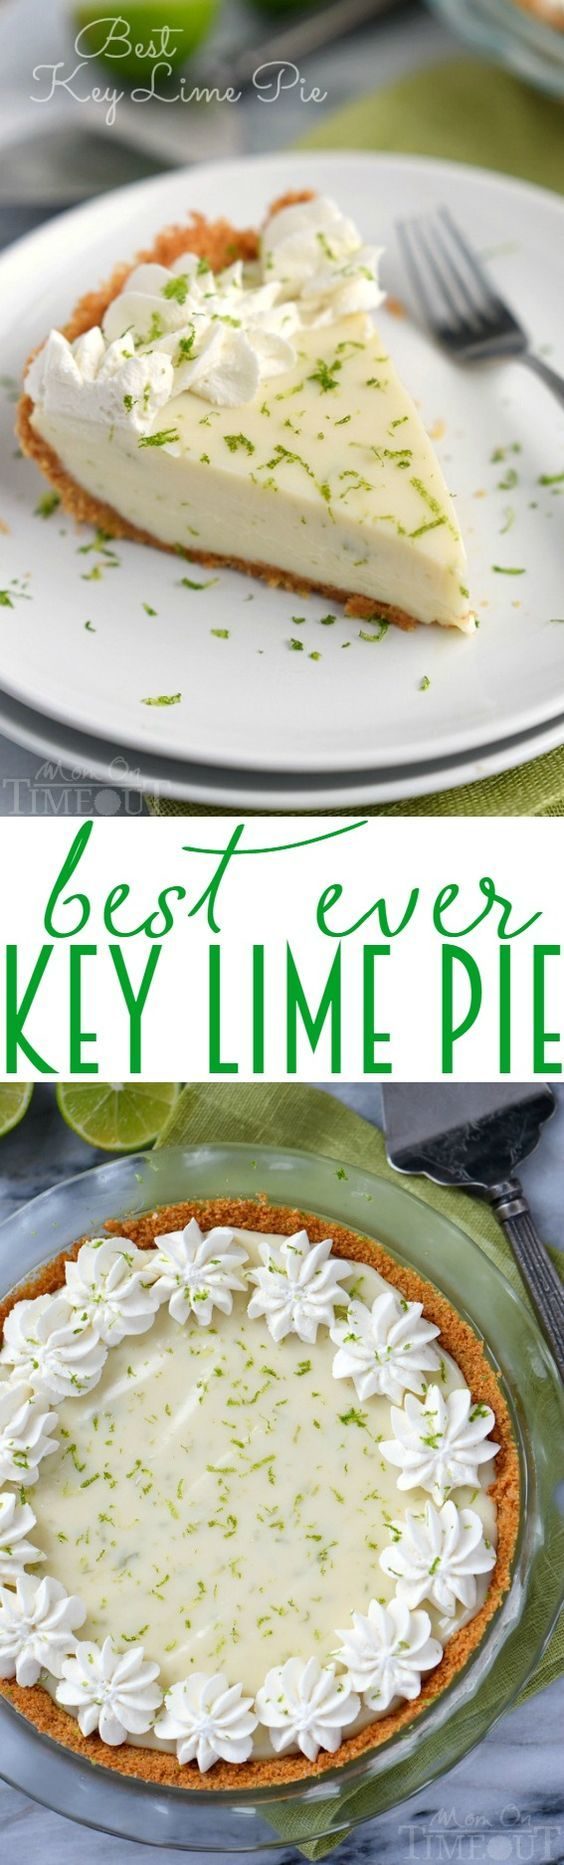 The Best Key Lime Pie recipe EVER! And so darn easy too! You won't be able to…